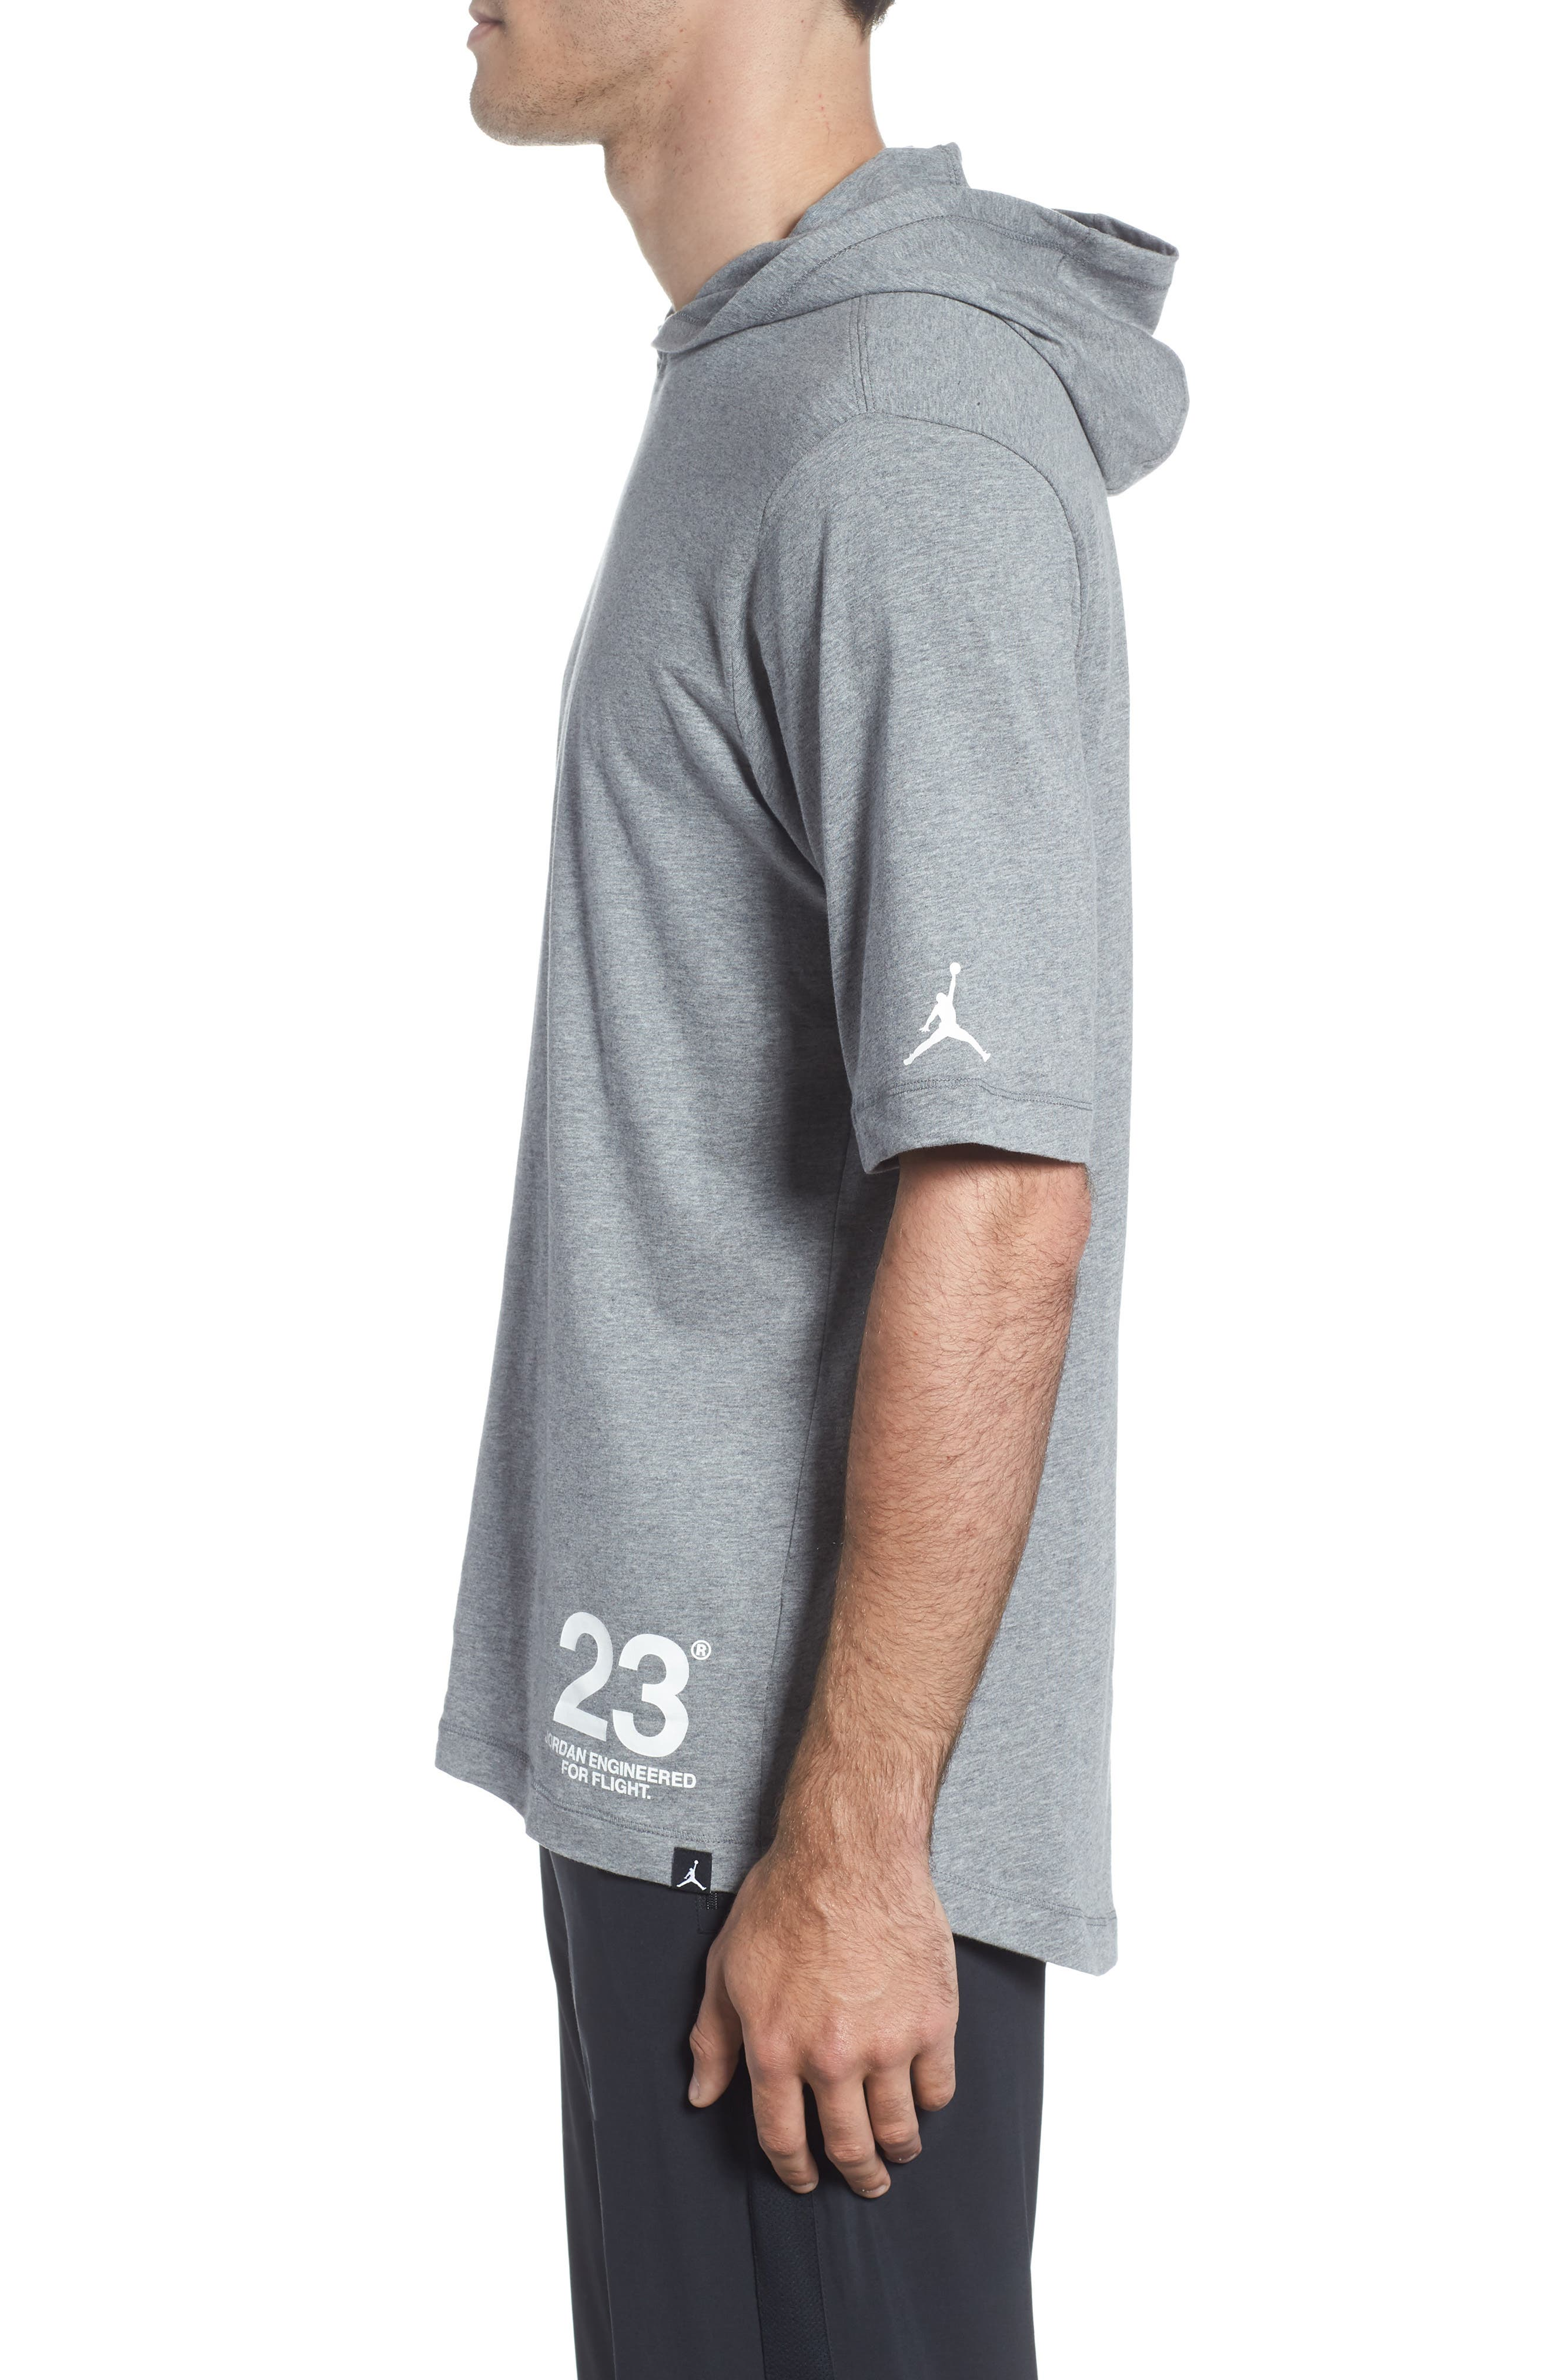 Sportswear 23 Hooded T-Shirt,                             Alternate thumbnail 3, color,                             CARBON HEATHER/ WHITE